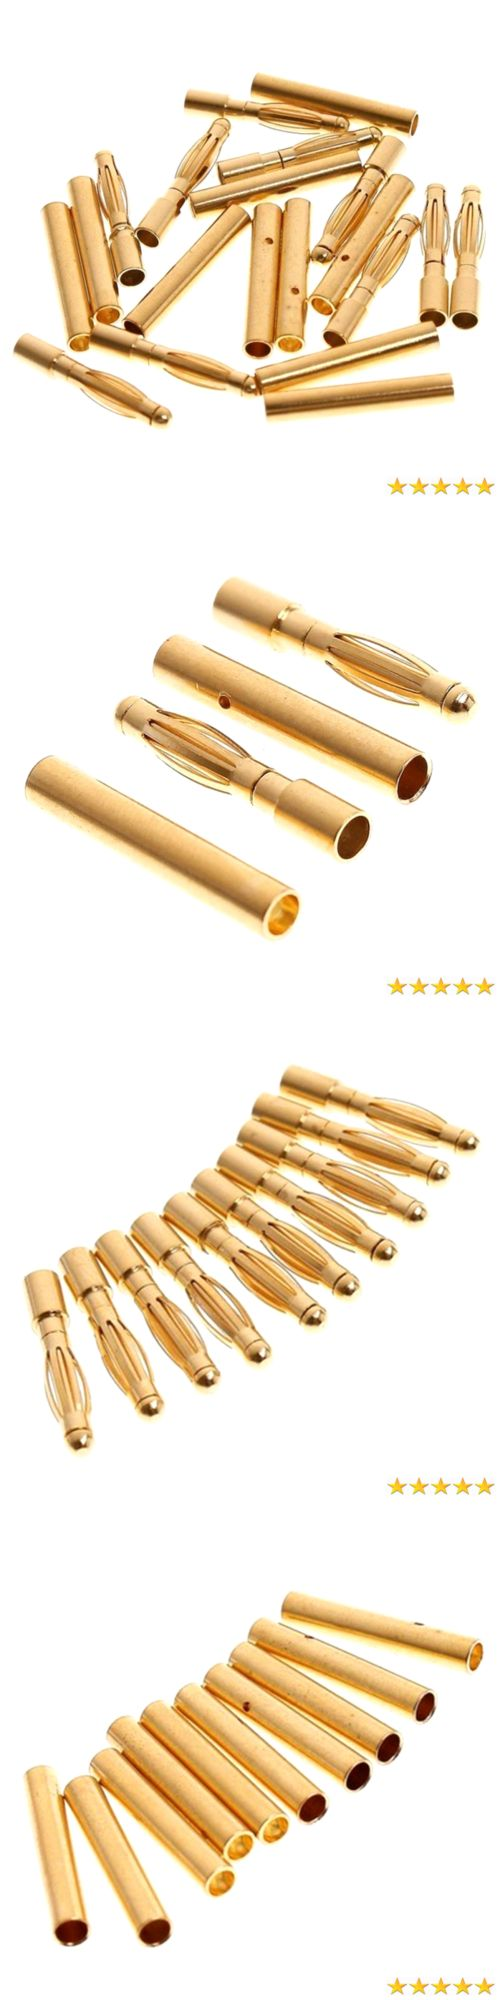 Switches Connectors and Wires 182178: Pixnor 50 Pairs Of 2.0Mm Gold Plated Male And Female Bullet Banana Connectors P -> BUY IT NOW ONLY: $37.78 on eBay!